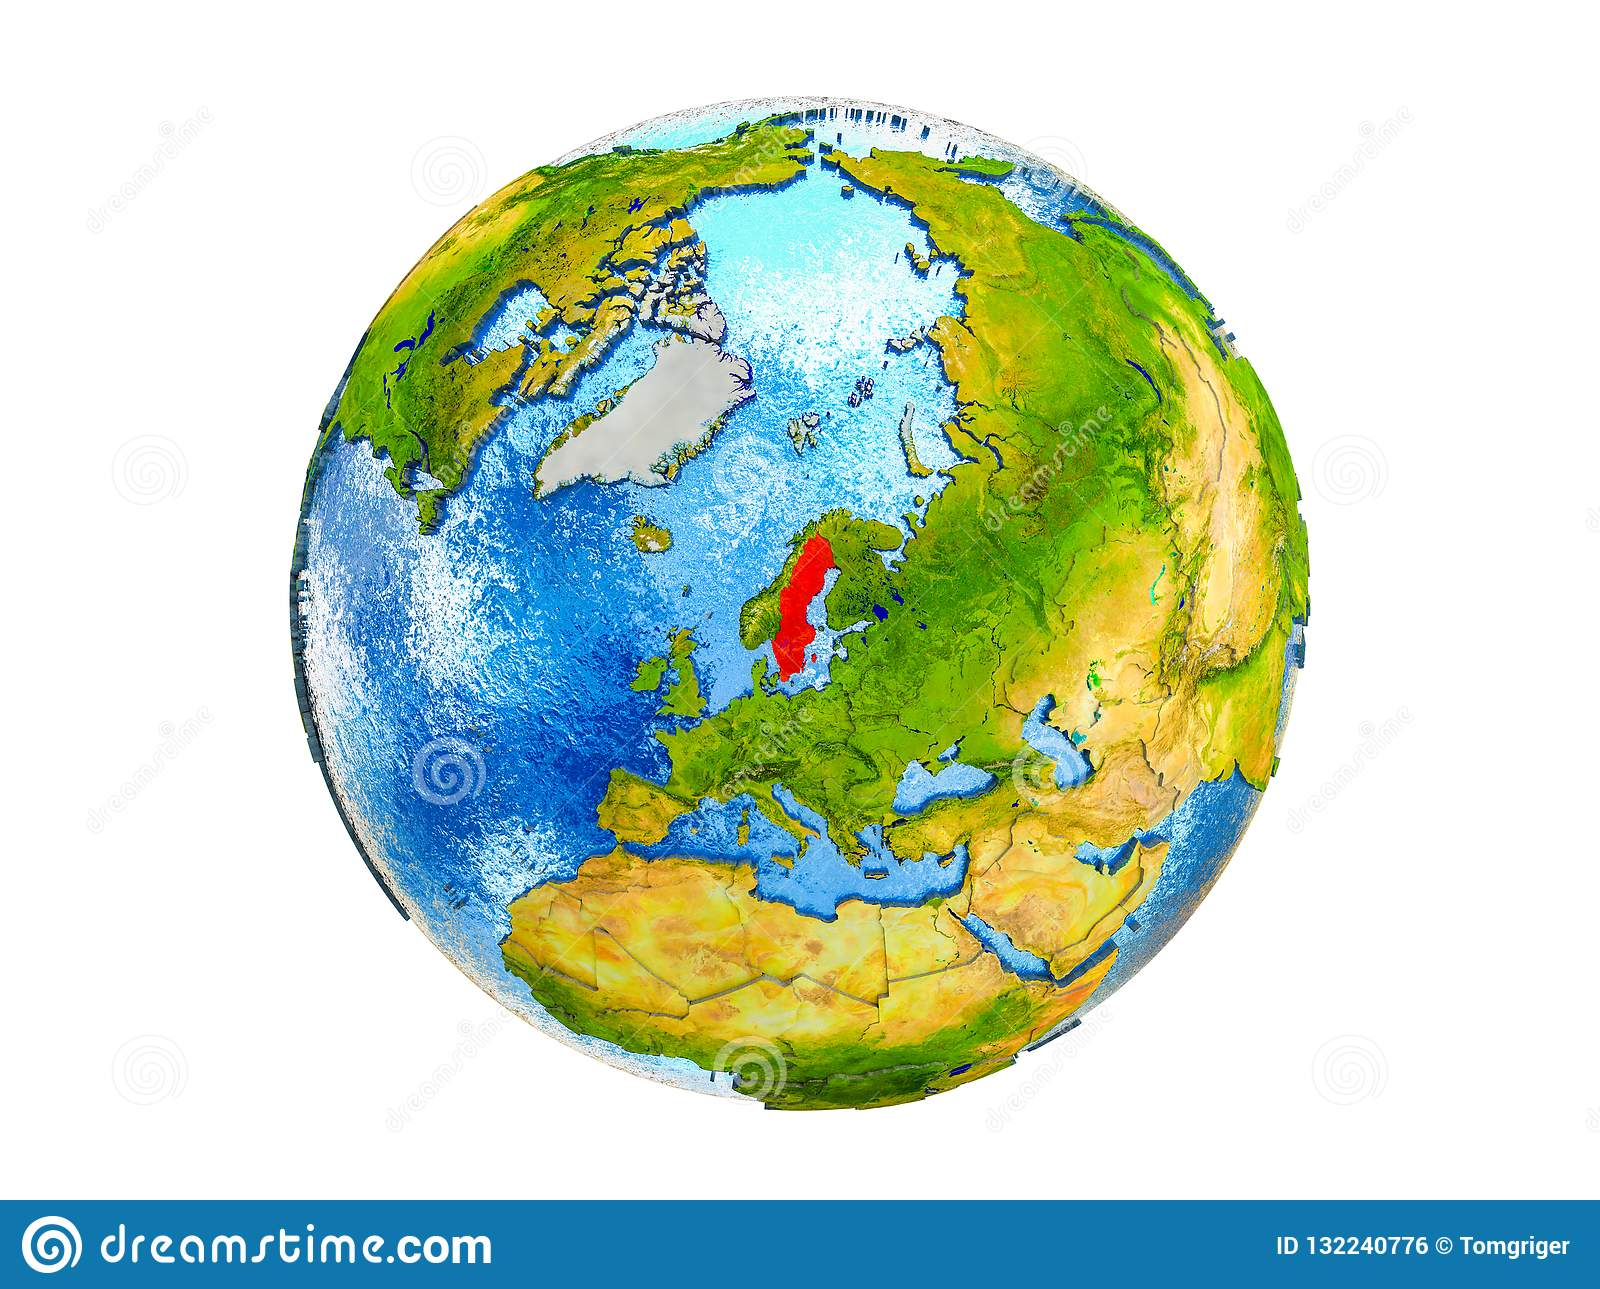 Map Of Sweden On 3D Earth Isolated Stock Illustration ...  D Map Of Sweden on street view of sweden, outline map of sweden, blackout map of sweden, interactive map of sweden, travel map of sweden, coloring map of sweden, cartoon map of sweden, cute map of sweden, vintage map of sweden, hd map of sweden, food map of sweden, terrain map of sweden, print map of sweden, google map of sweden, black map of sweden,